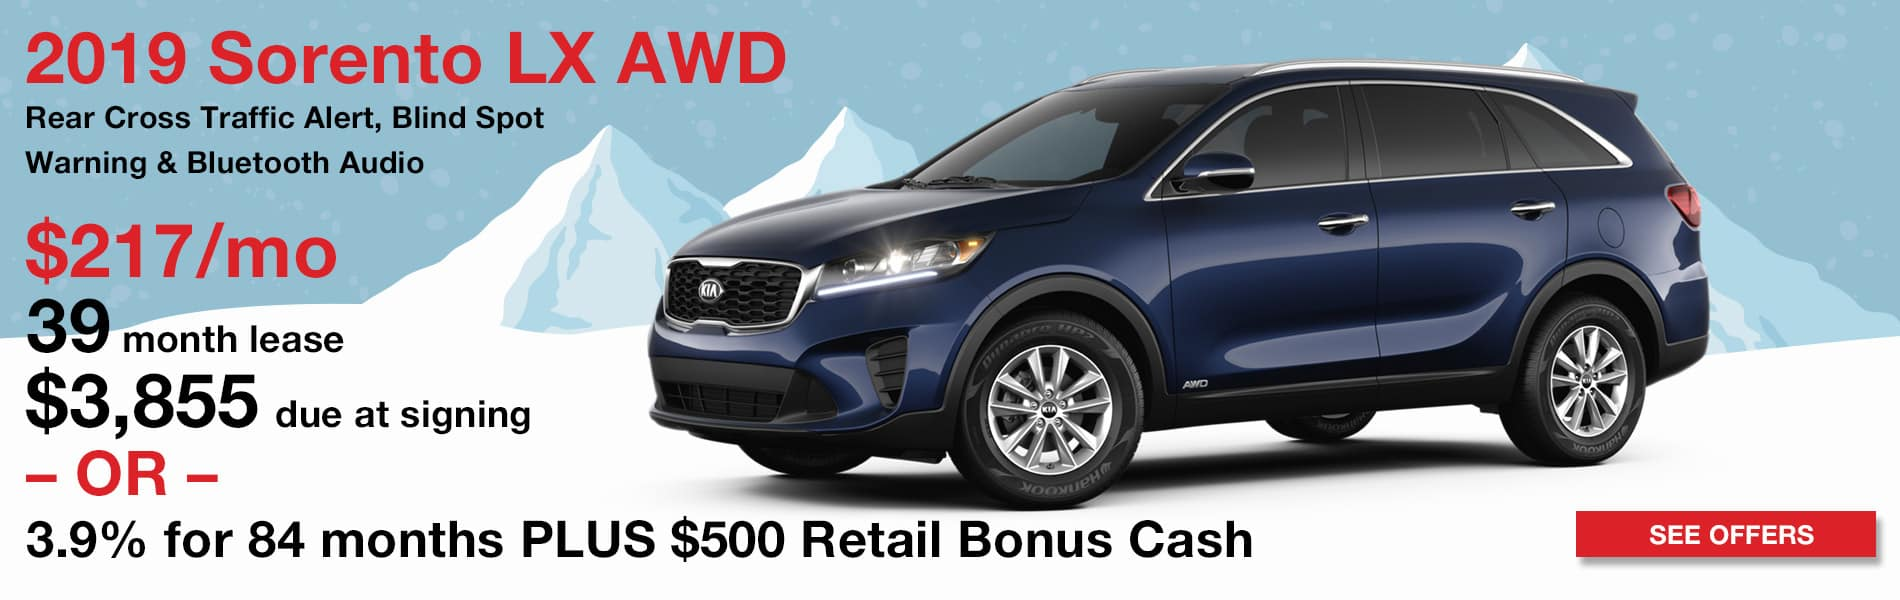 Lease a 2019 Kia Sorento LX AWD for $217 per month with $3,855 due at signing or finance for 3.9% APR for 84 months plus $500 Bonus Cash